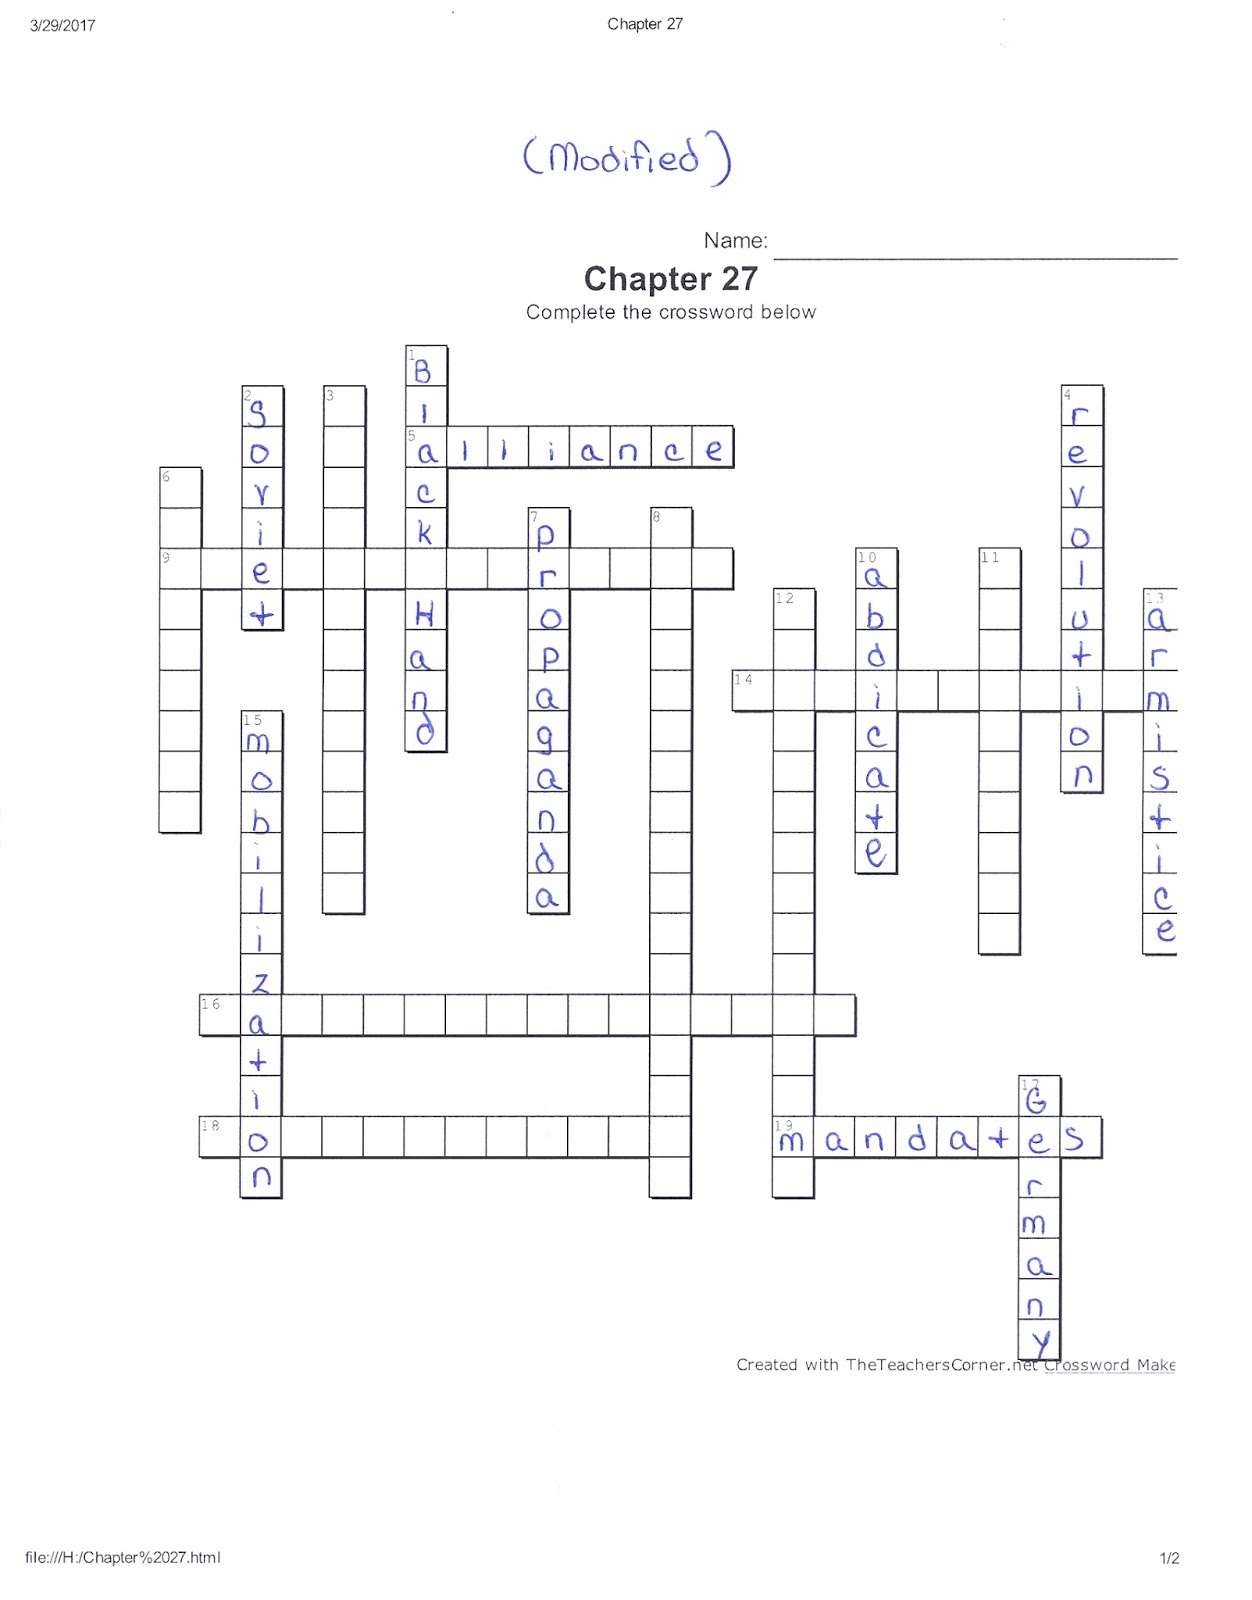 chapter 27 crossword key